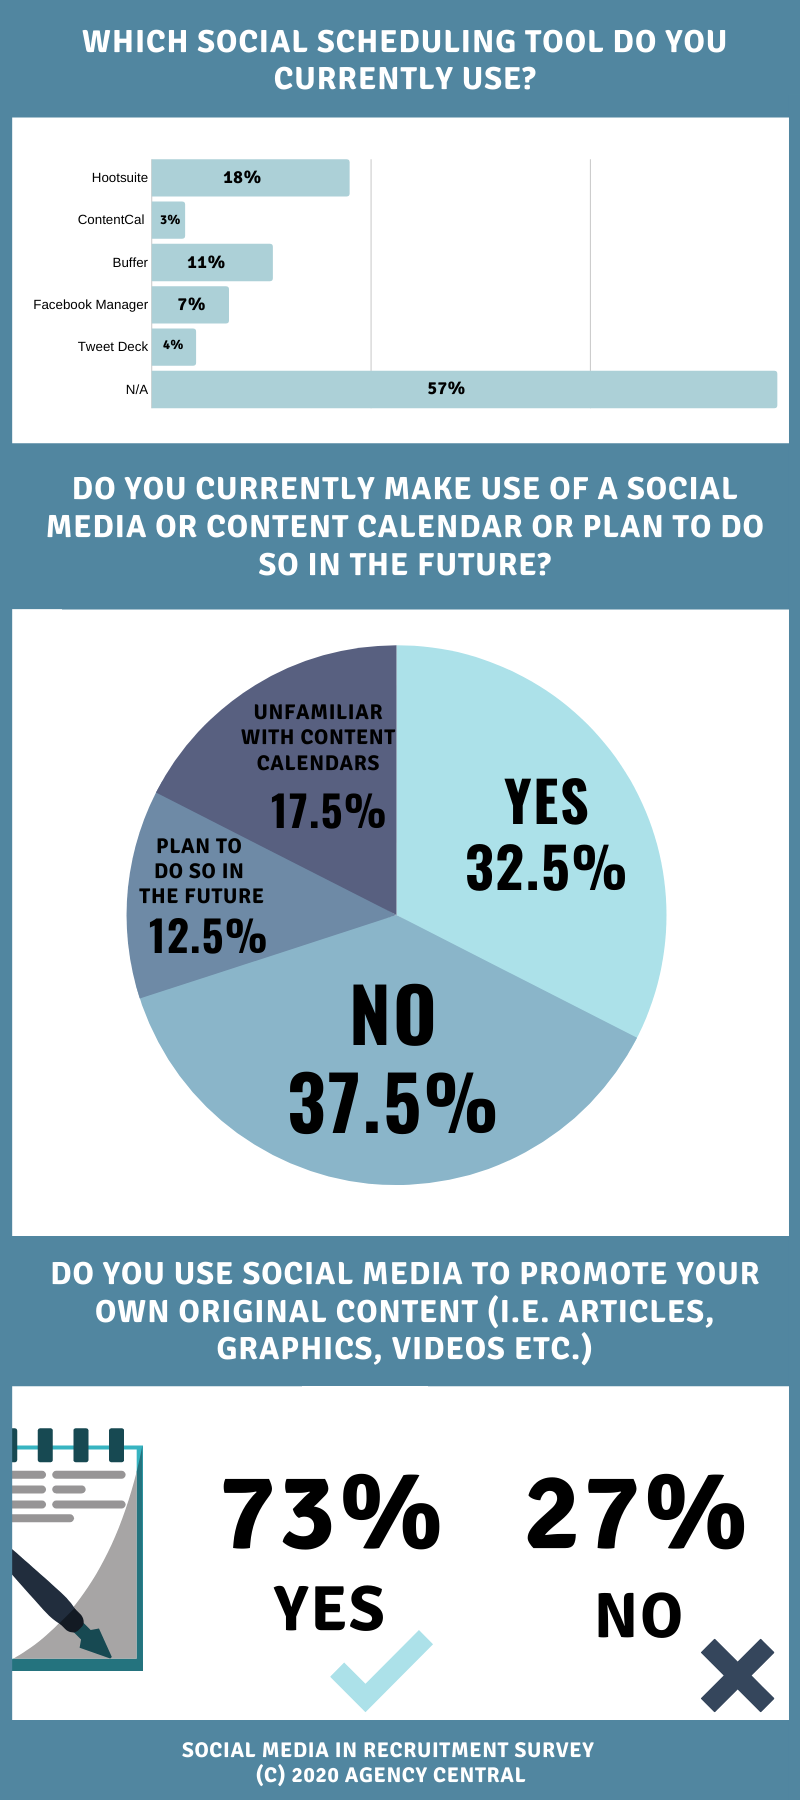 Infographic with survey data on the use of social scheduling tools and the use of social media to promote content.